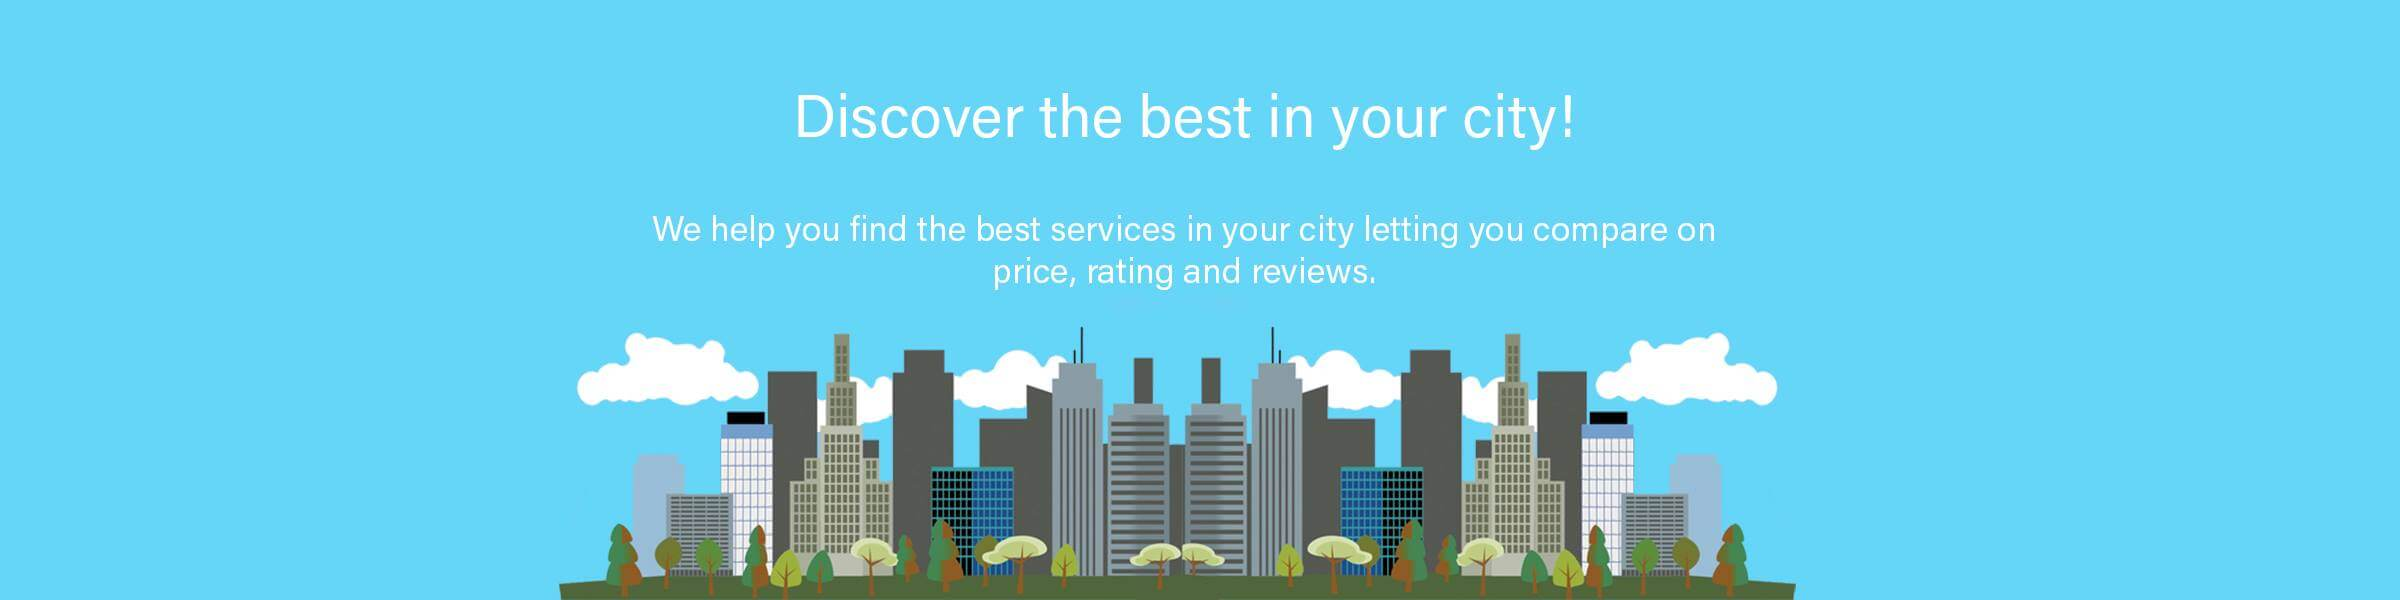 Service at best is the first Home Services Comparison website in India. Compare home services from urbanclap, housejoy, timesaverz etc. Get the best price and the best home service for appliance repairs, beauty services at home, ac service, ac repair and more.